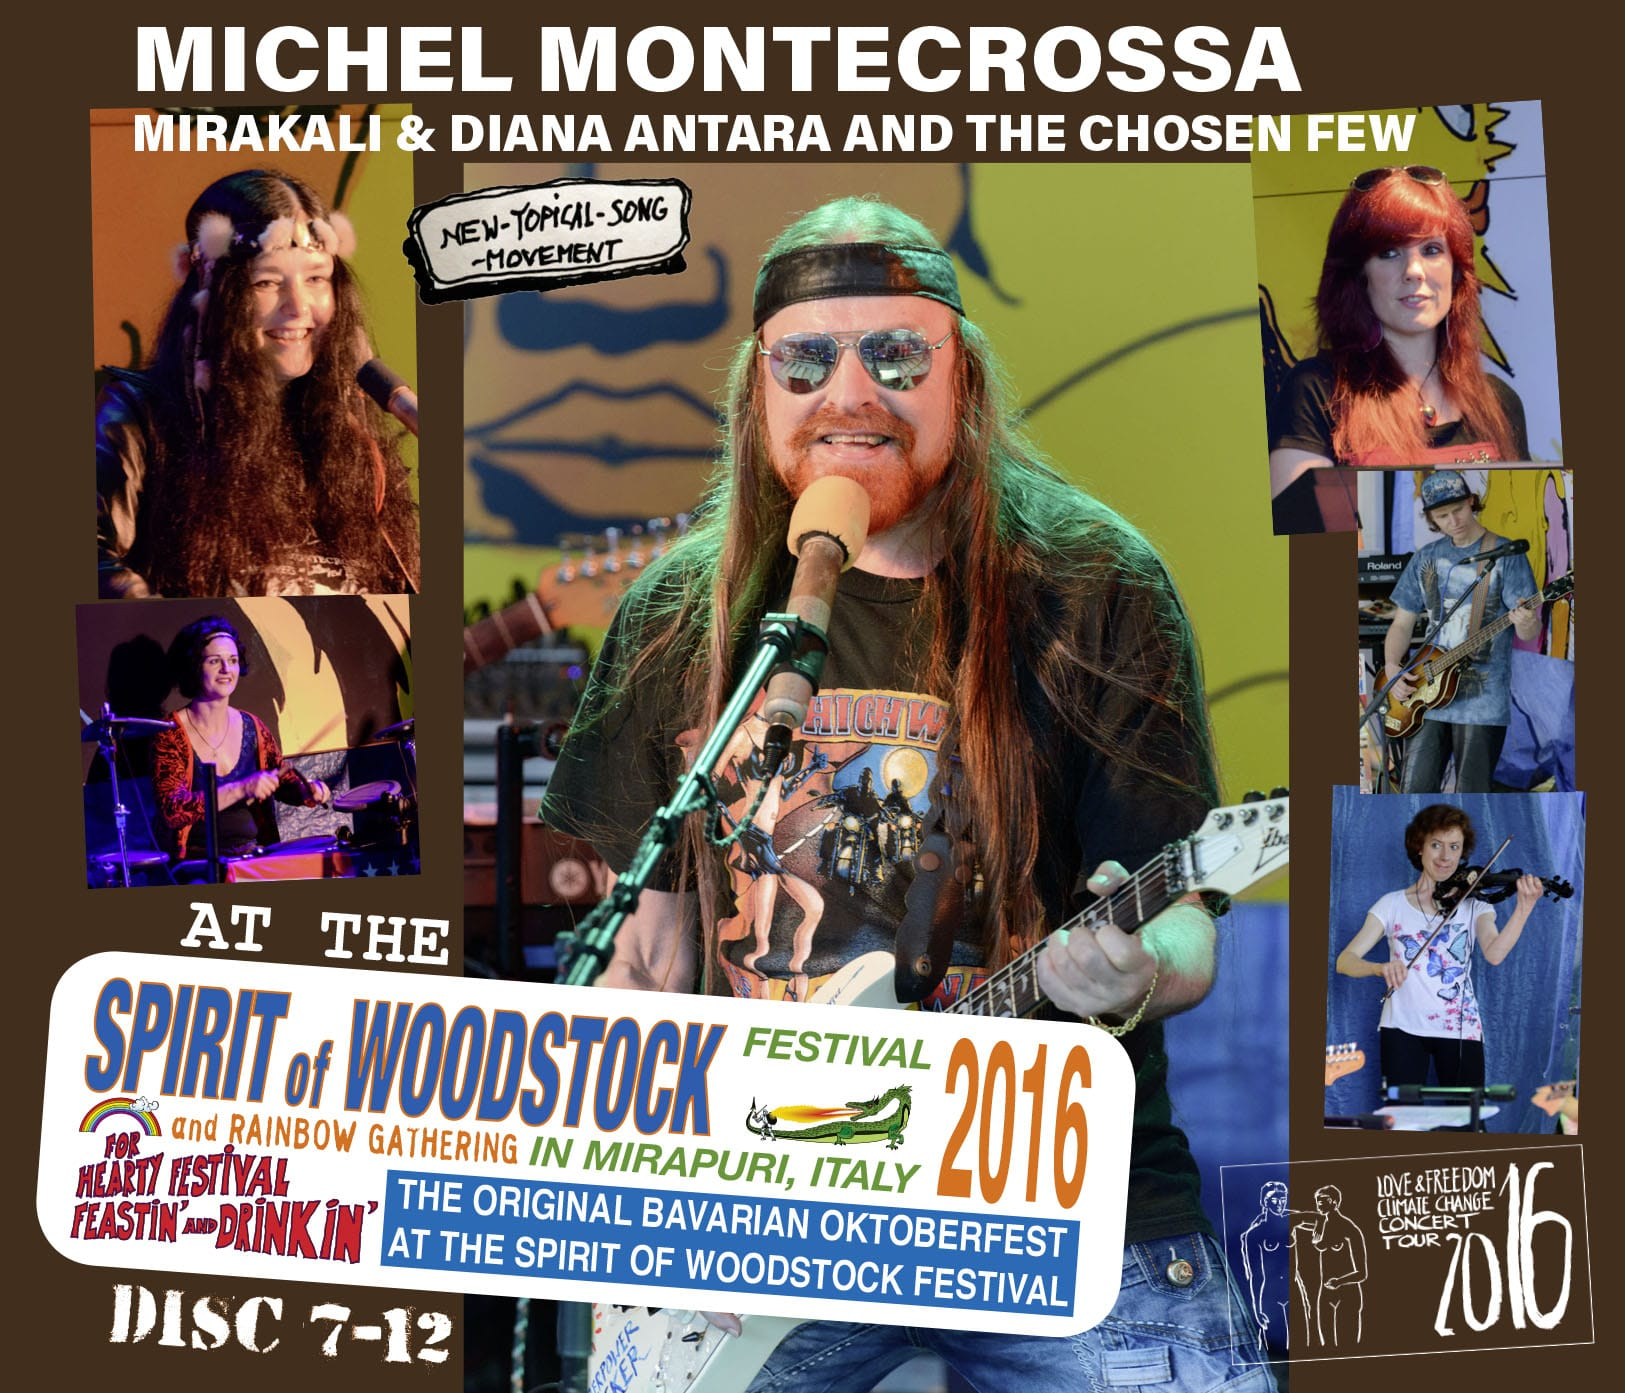 Michel Montecrossa, Mirakali and Diana Antara at the Spirit of Woodstock Festival 2016 in Mirapuri, Italy - Set 2